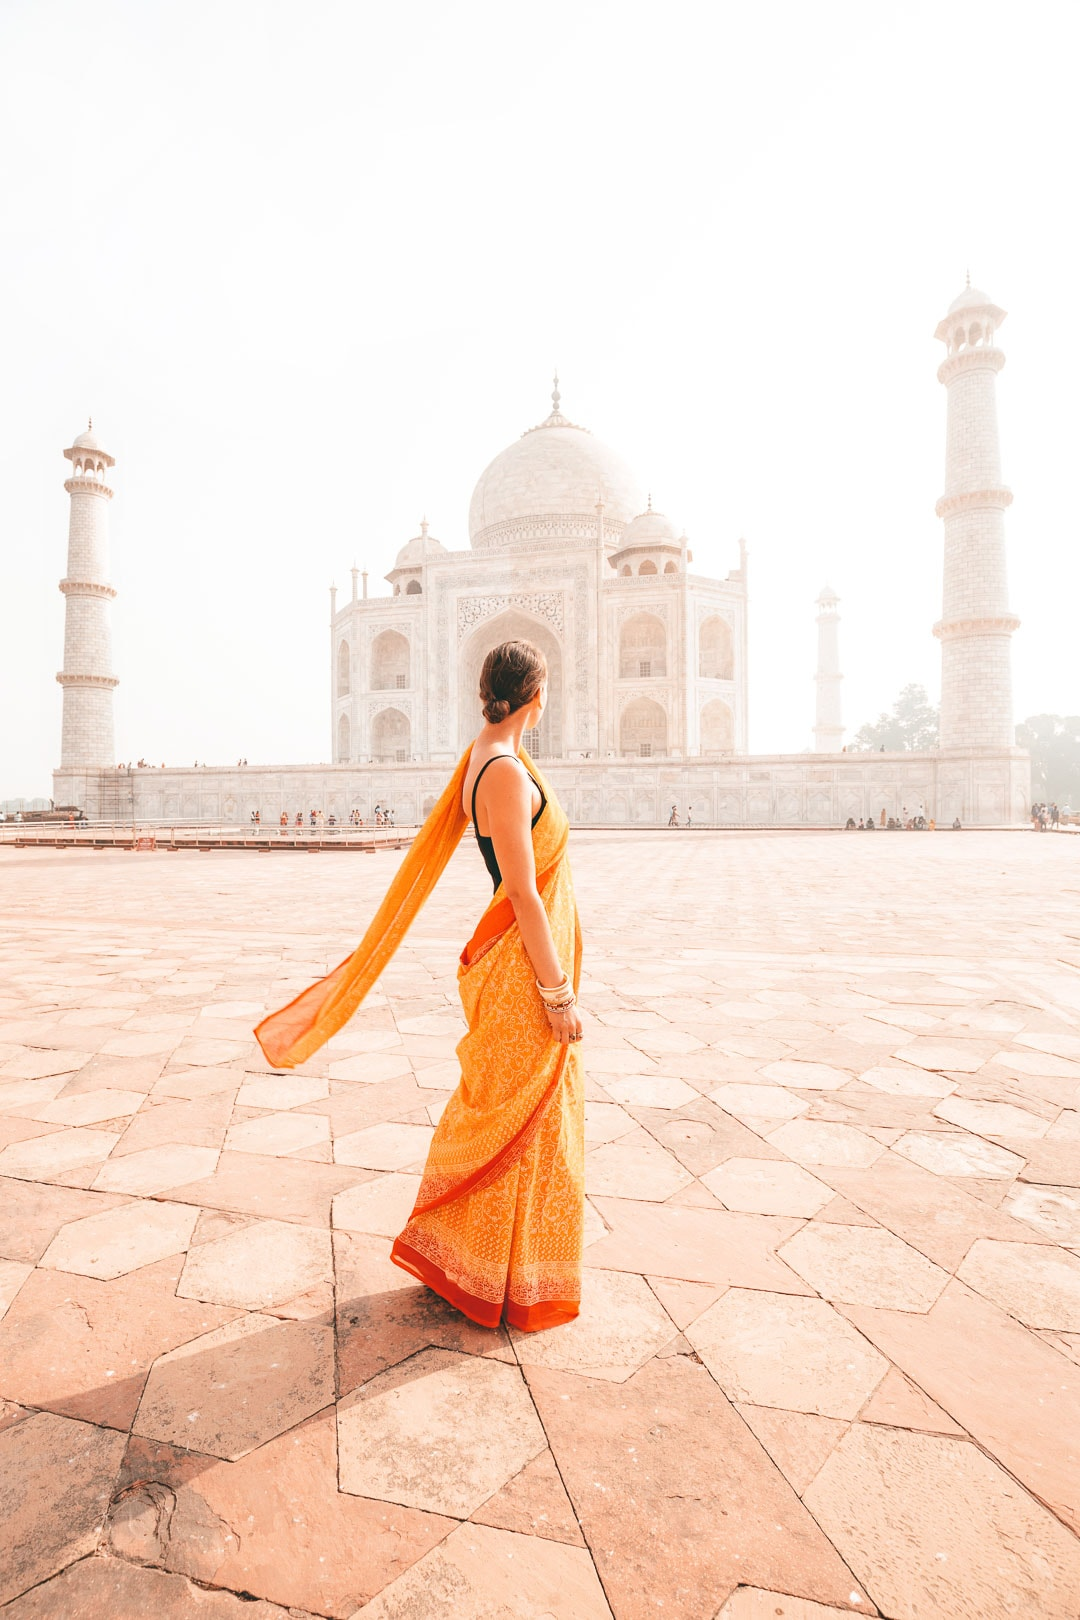 Sindhya of travel blog Why We Seek in front of the Taj Mahal in Agra, India.